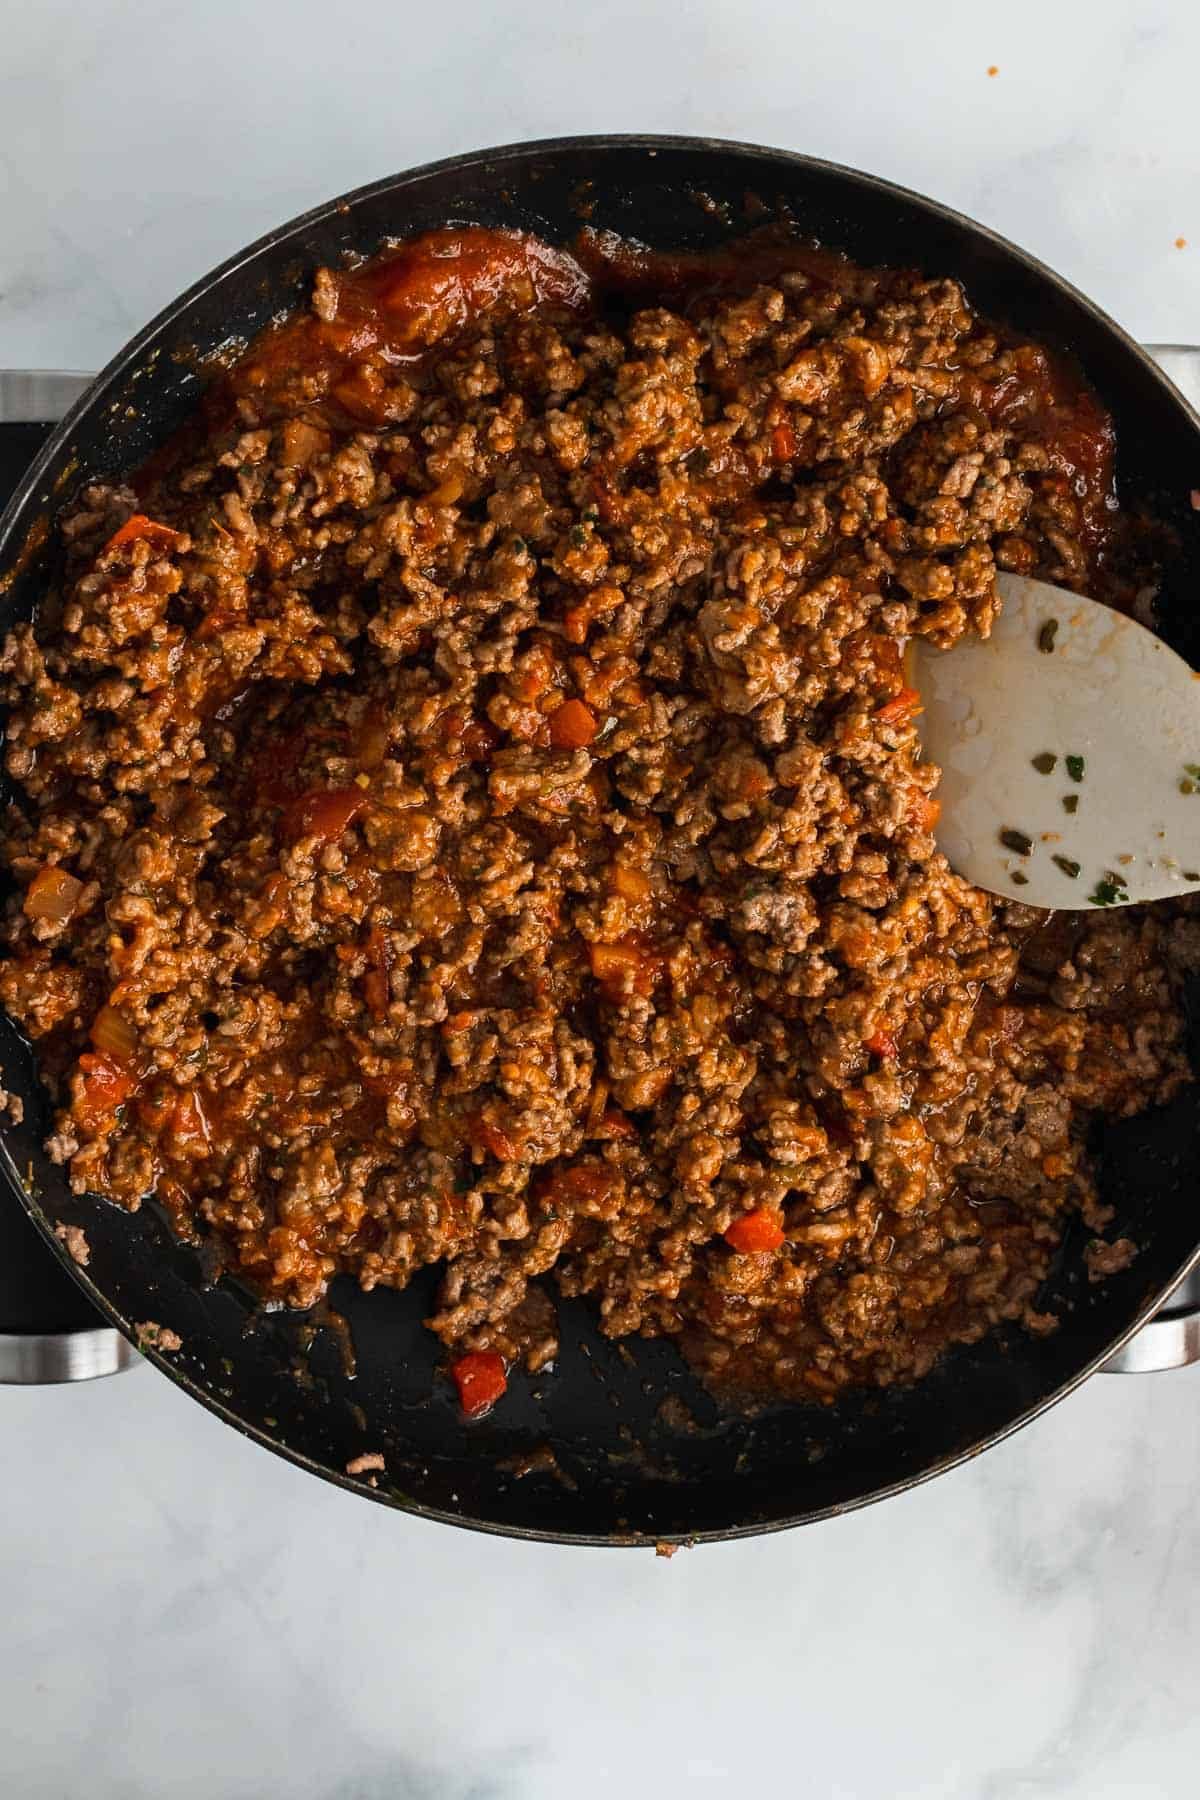 Tomato sauce stirred into the cooked ground beef in the skillet, as seen from above